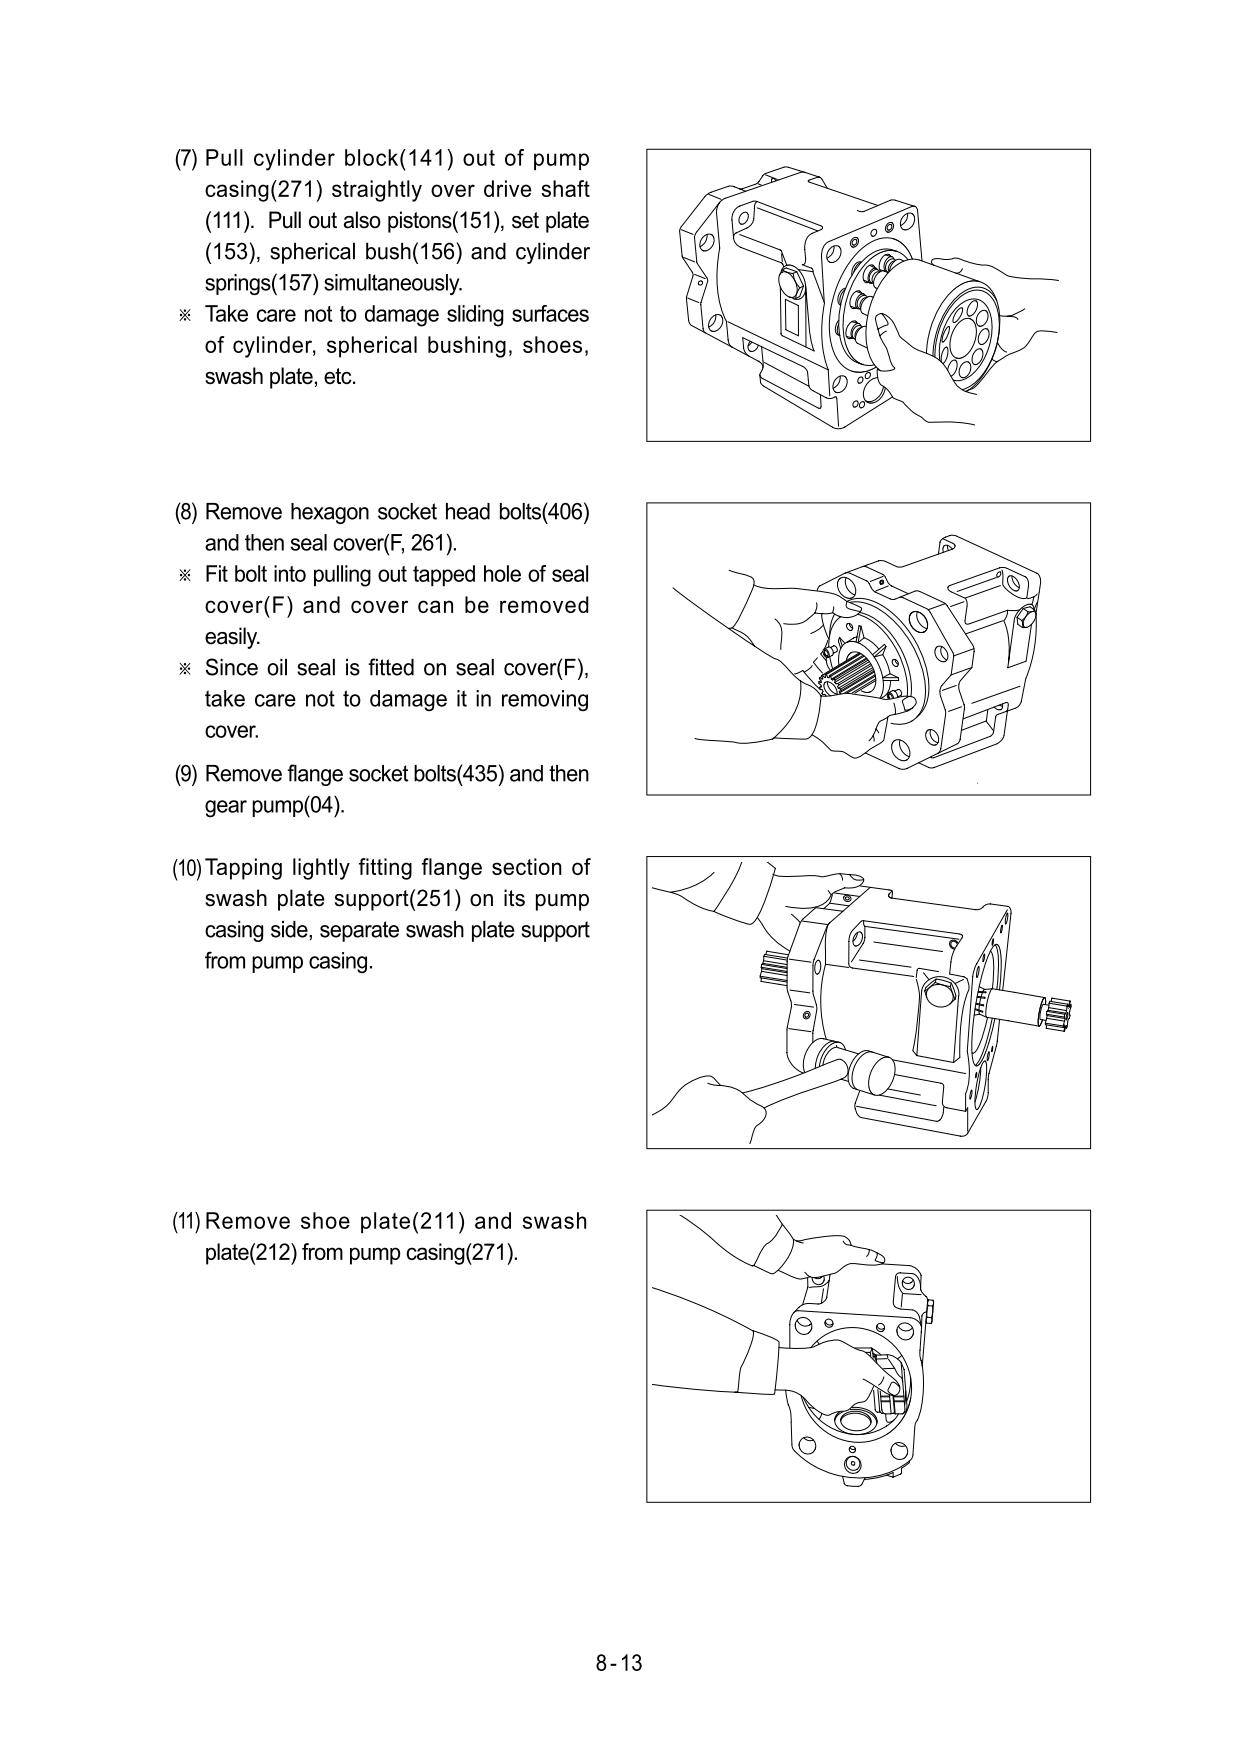 Guidelines for repair and maintenance of Hyundai R130W-3